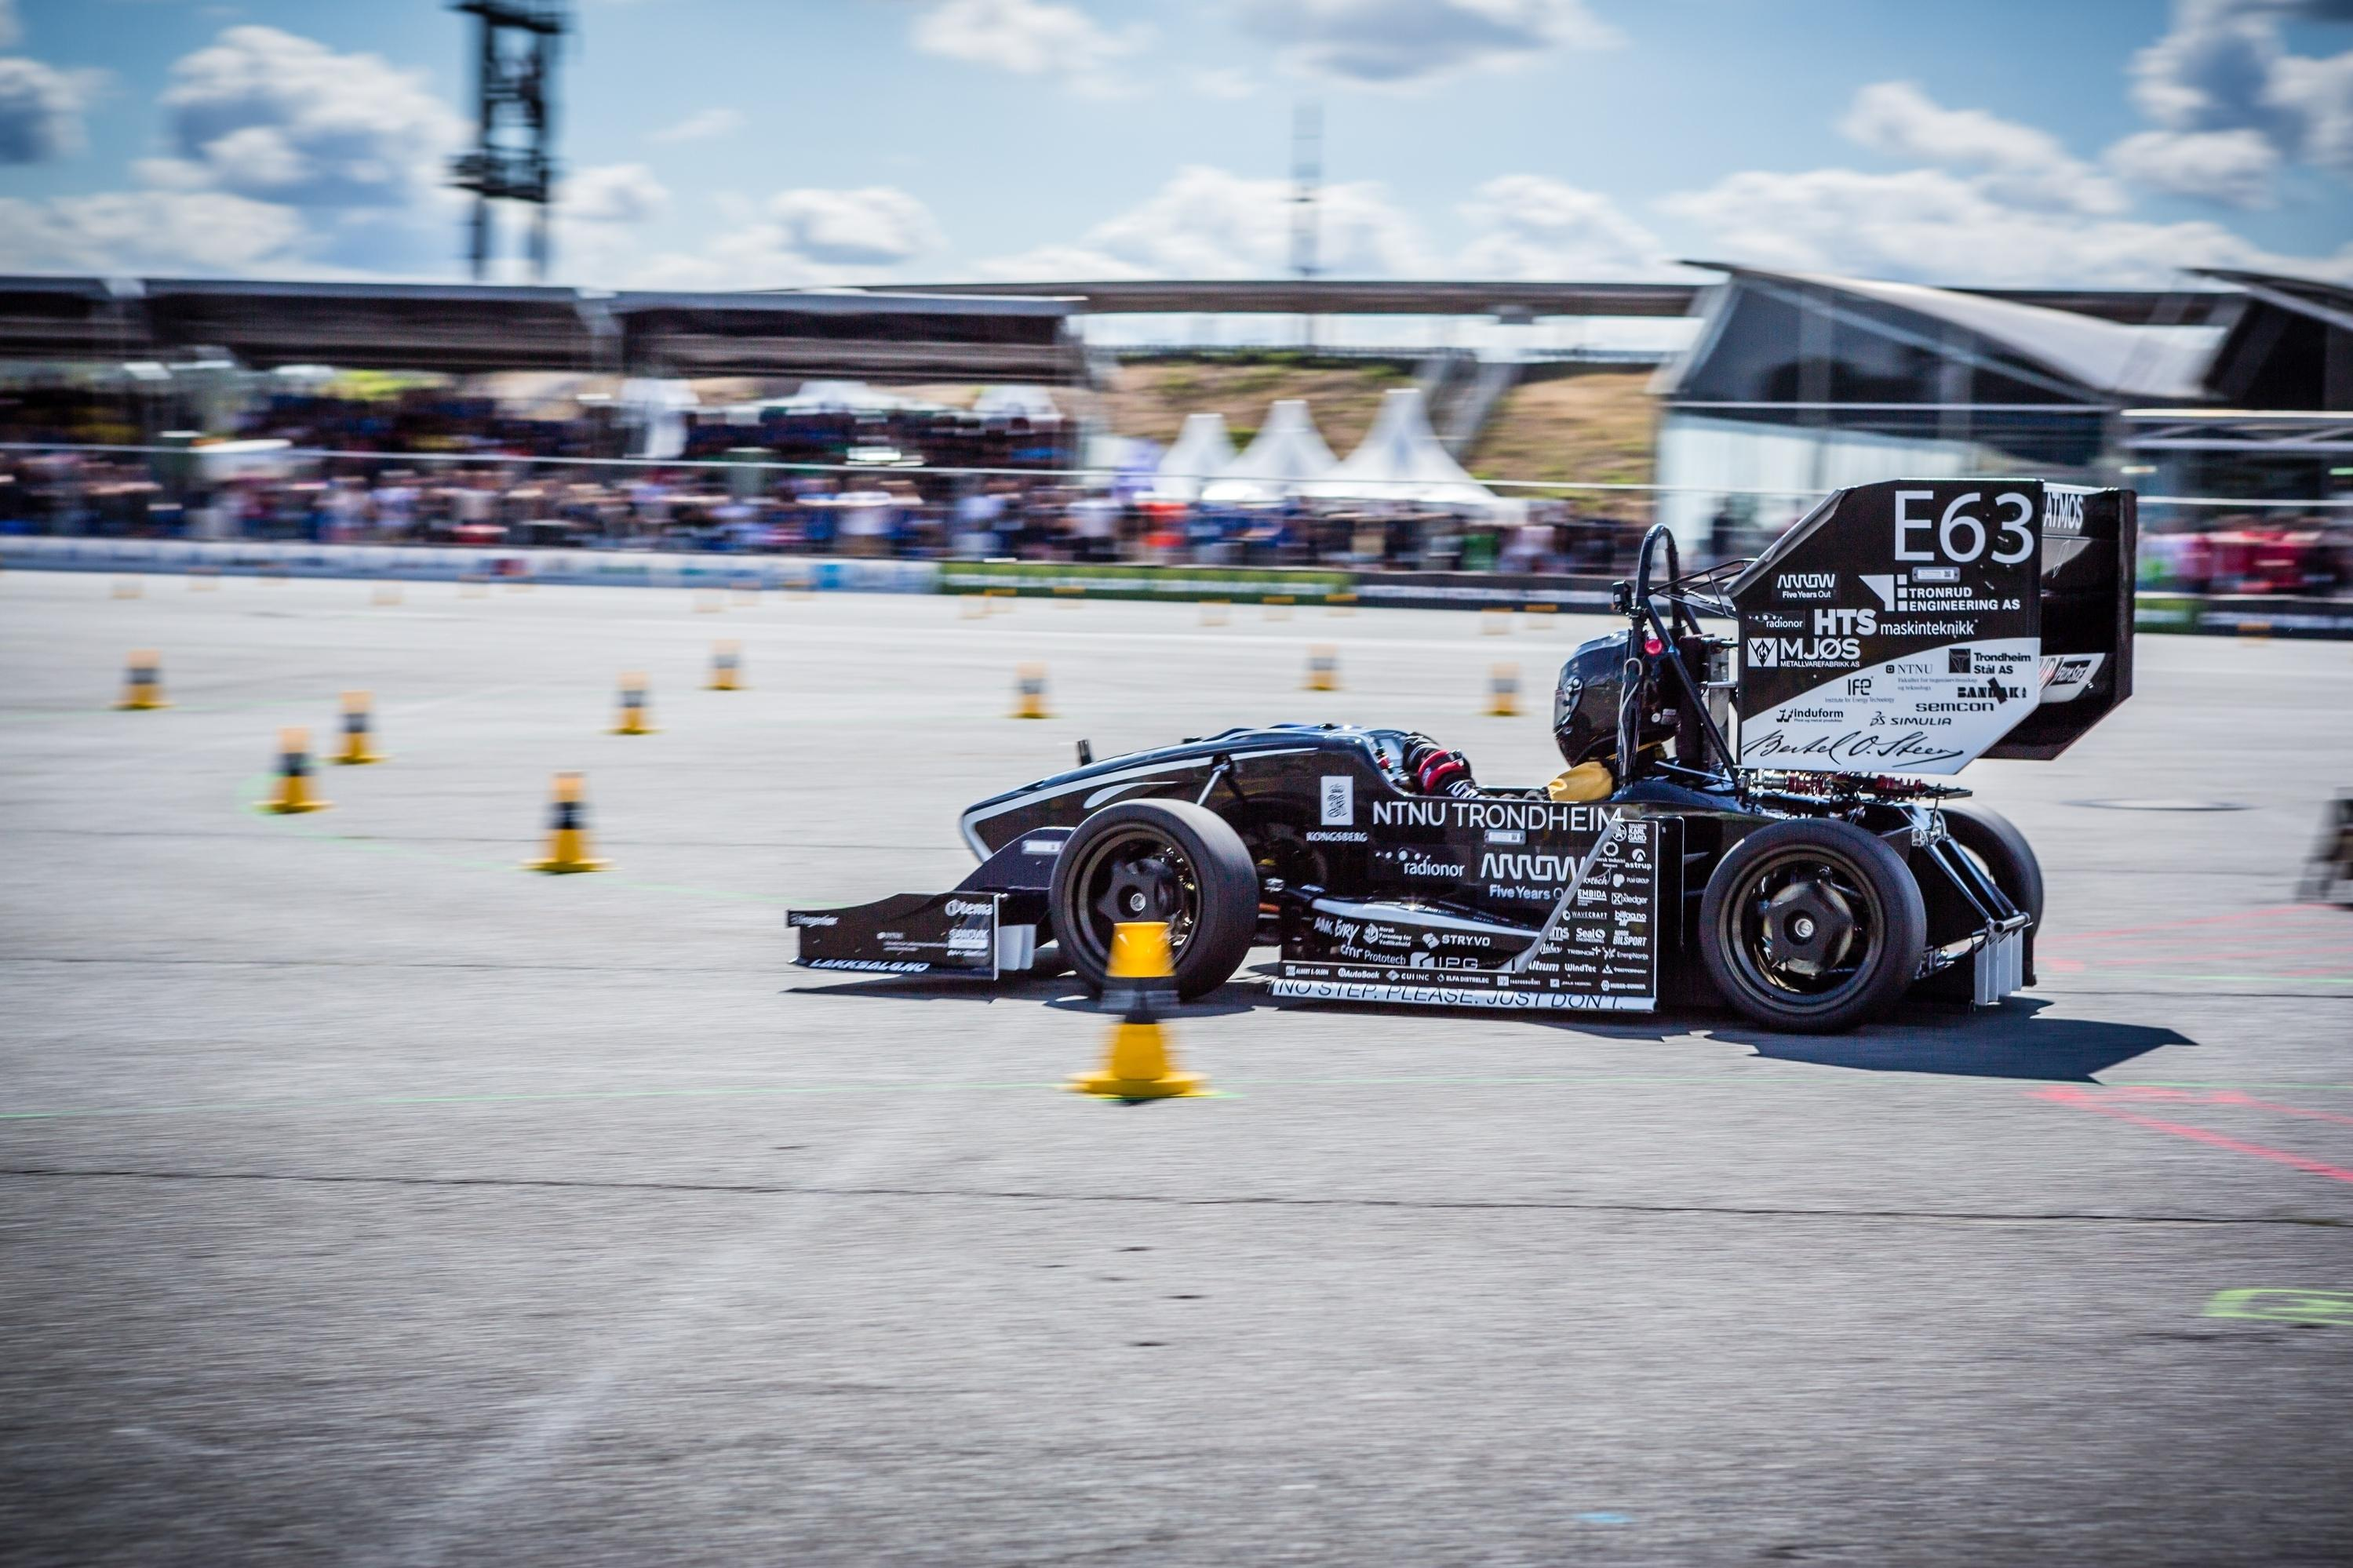 Racing car built on 3D-printed parts from TE